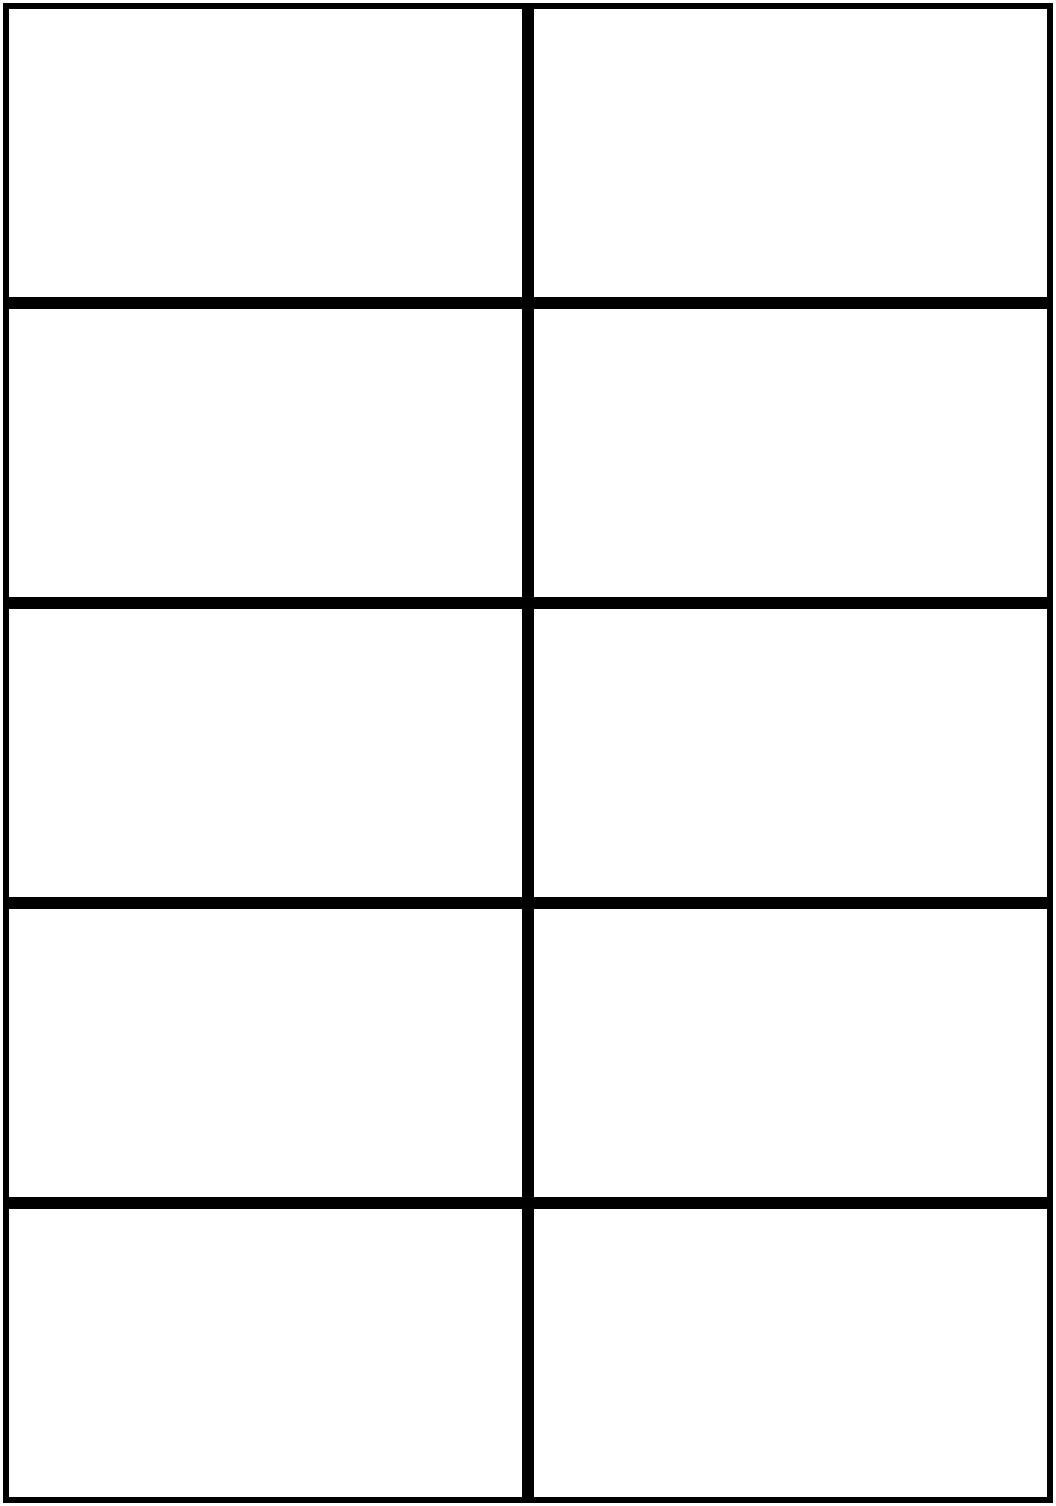 Image Result For Flashcards Template Word   Worksheets   Free - Free Printable Business Card Templates